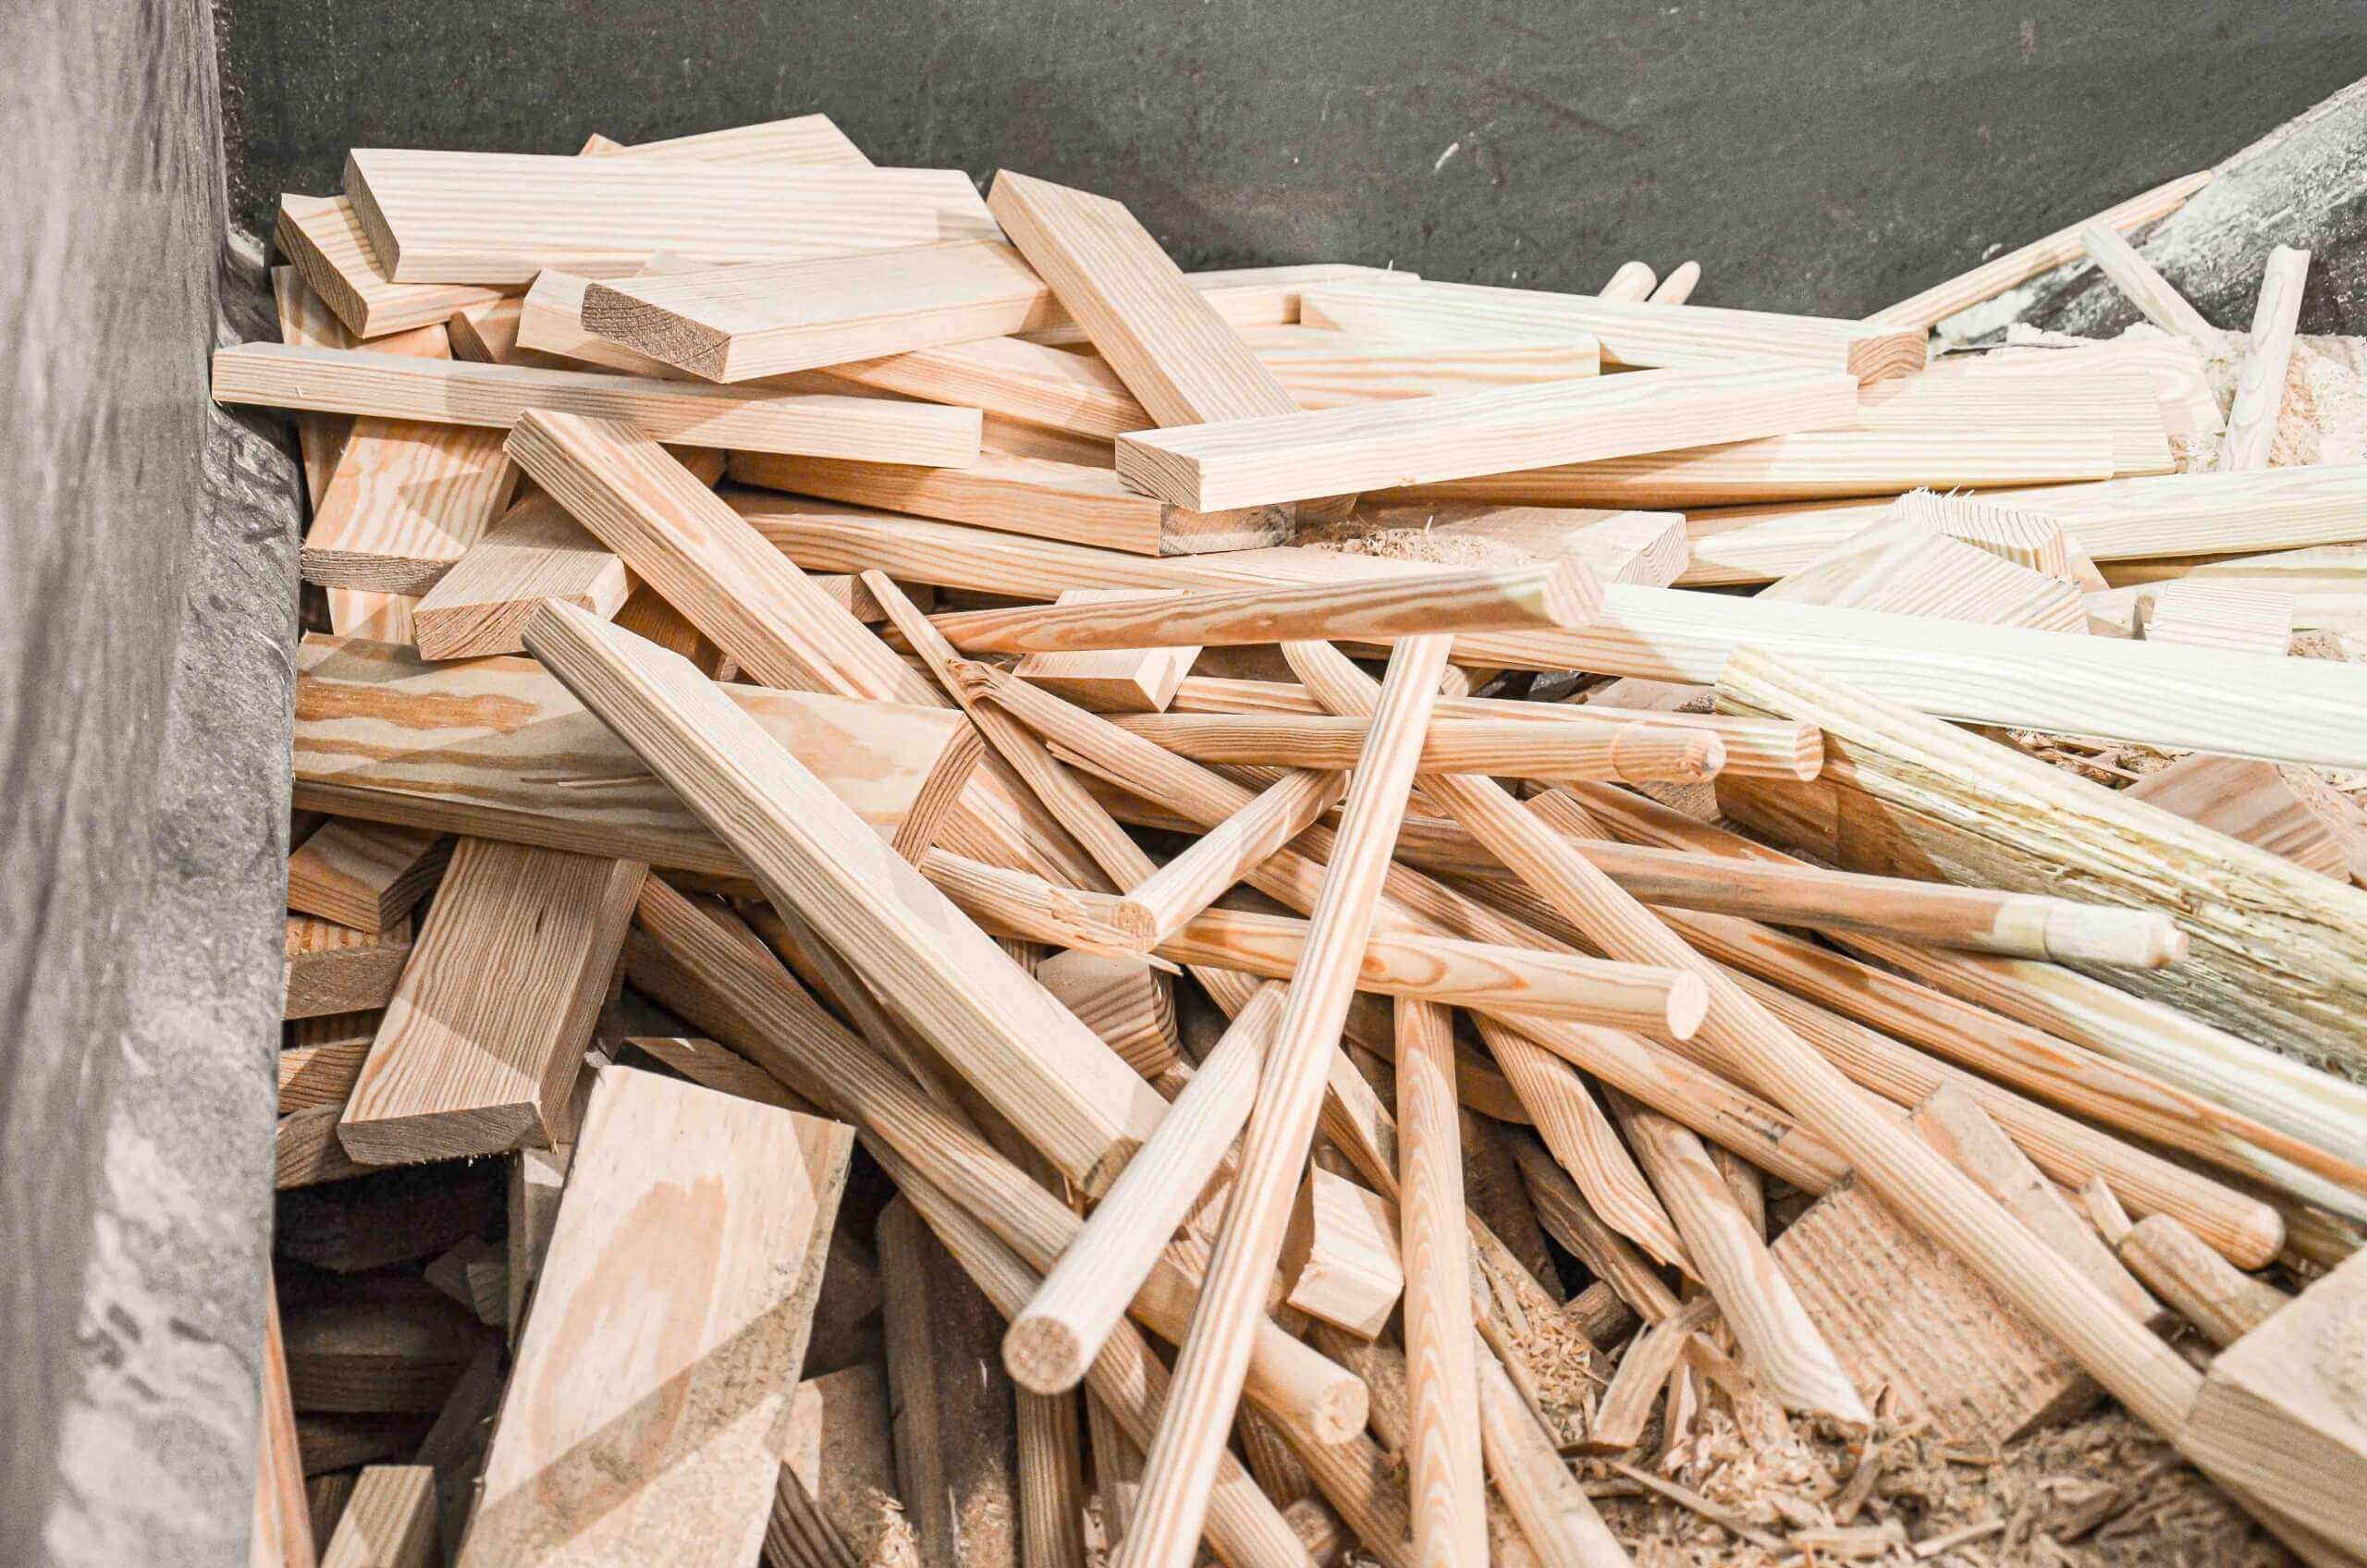 Wood scrap like broom handles and other wood waste